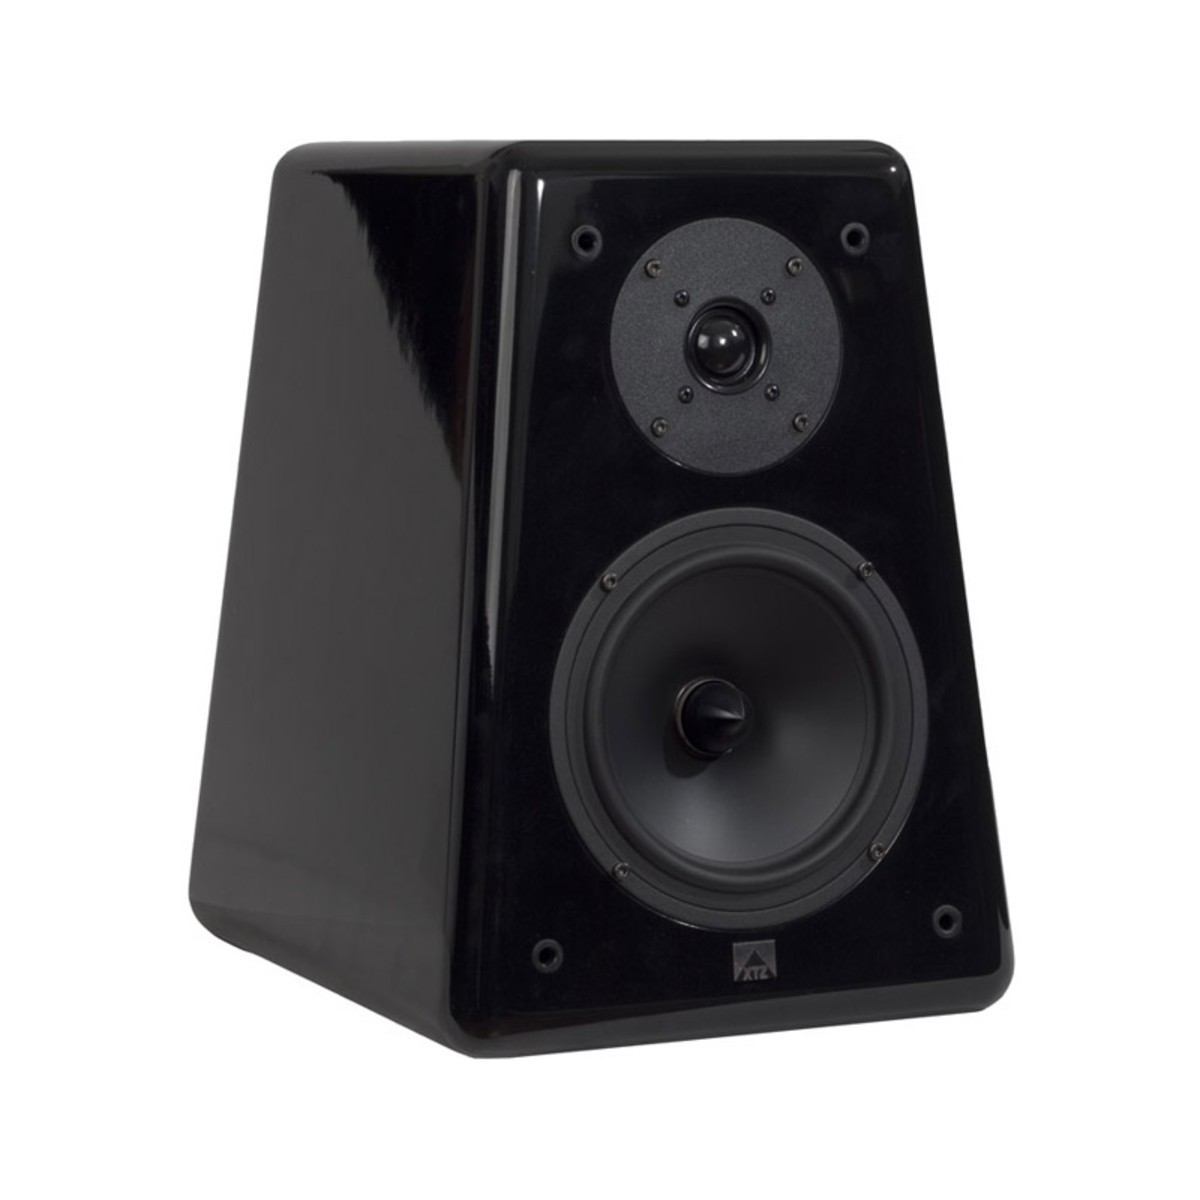 XTZ 93 WMT / 93.23 Speakers Review